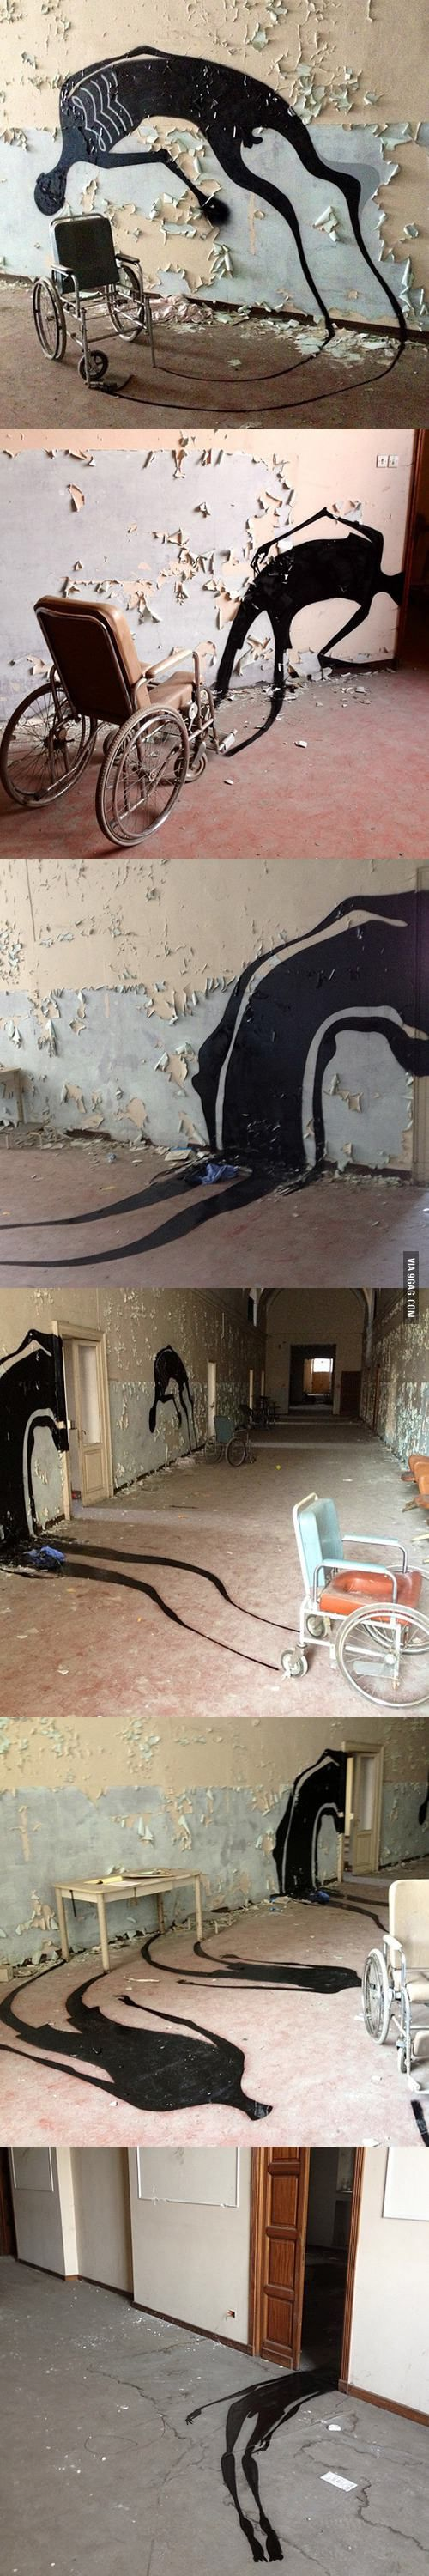 Brazilian street artist paints shadows in abandoned psychiatric hospitals ***kudos for making an already creepy place even creepier ((shudders))***